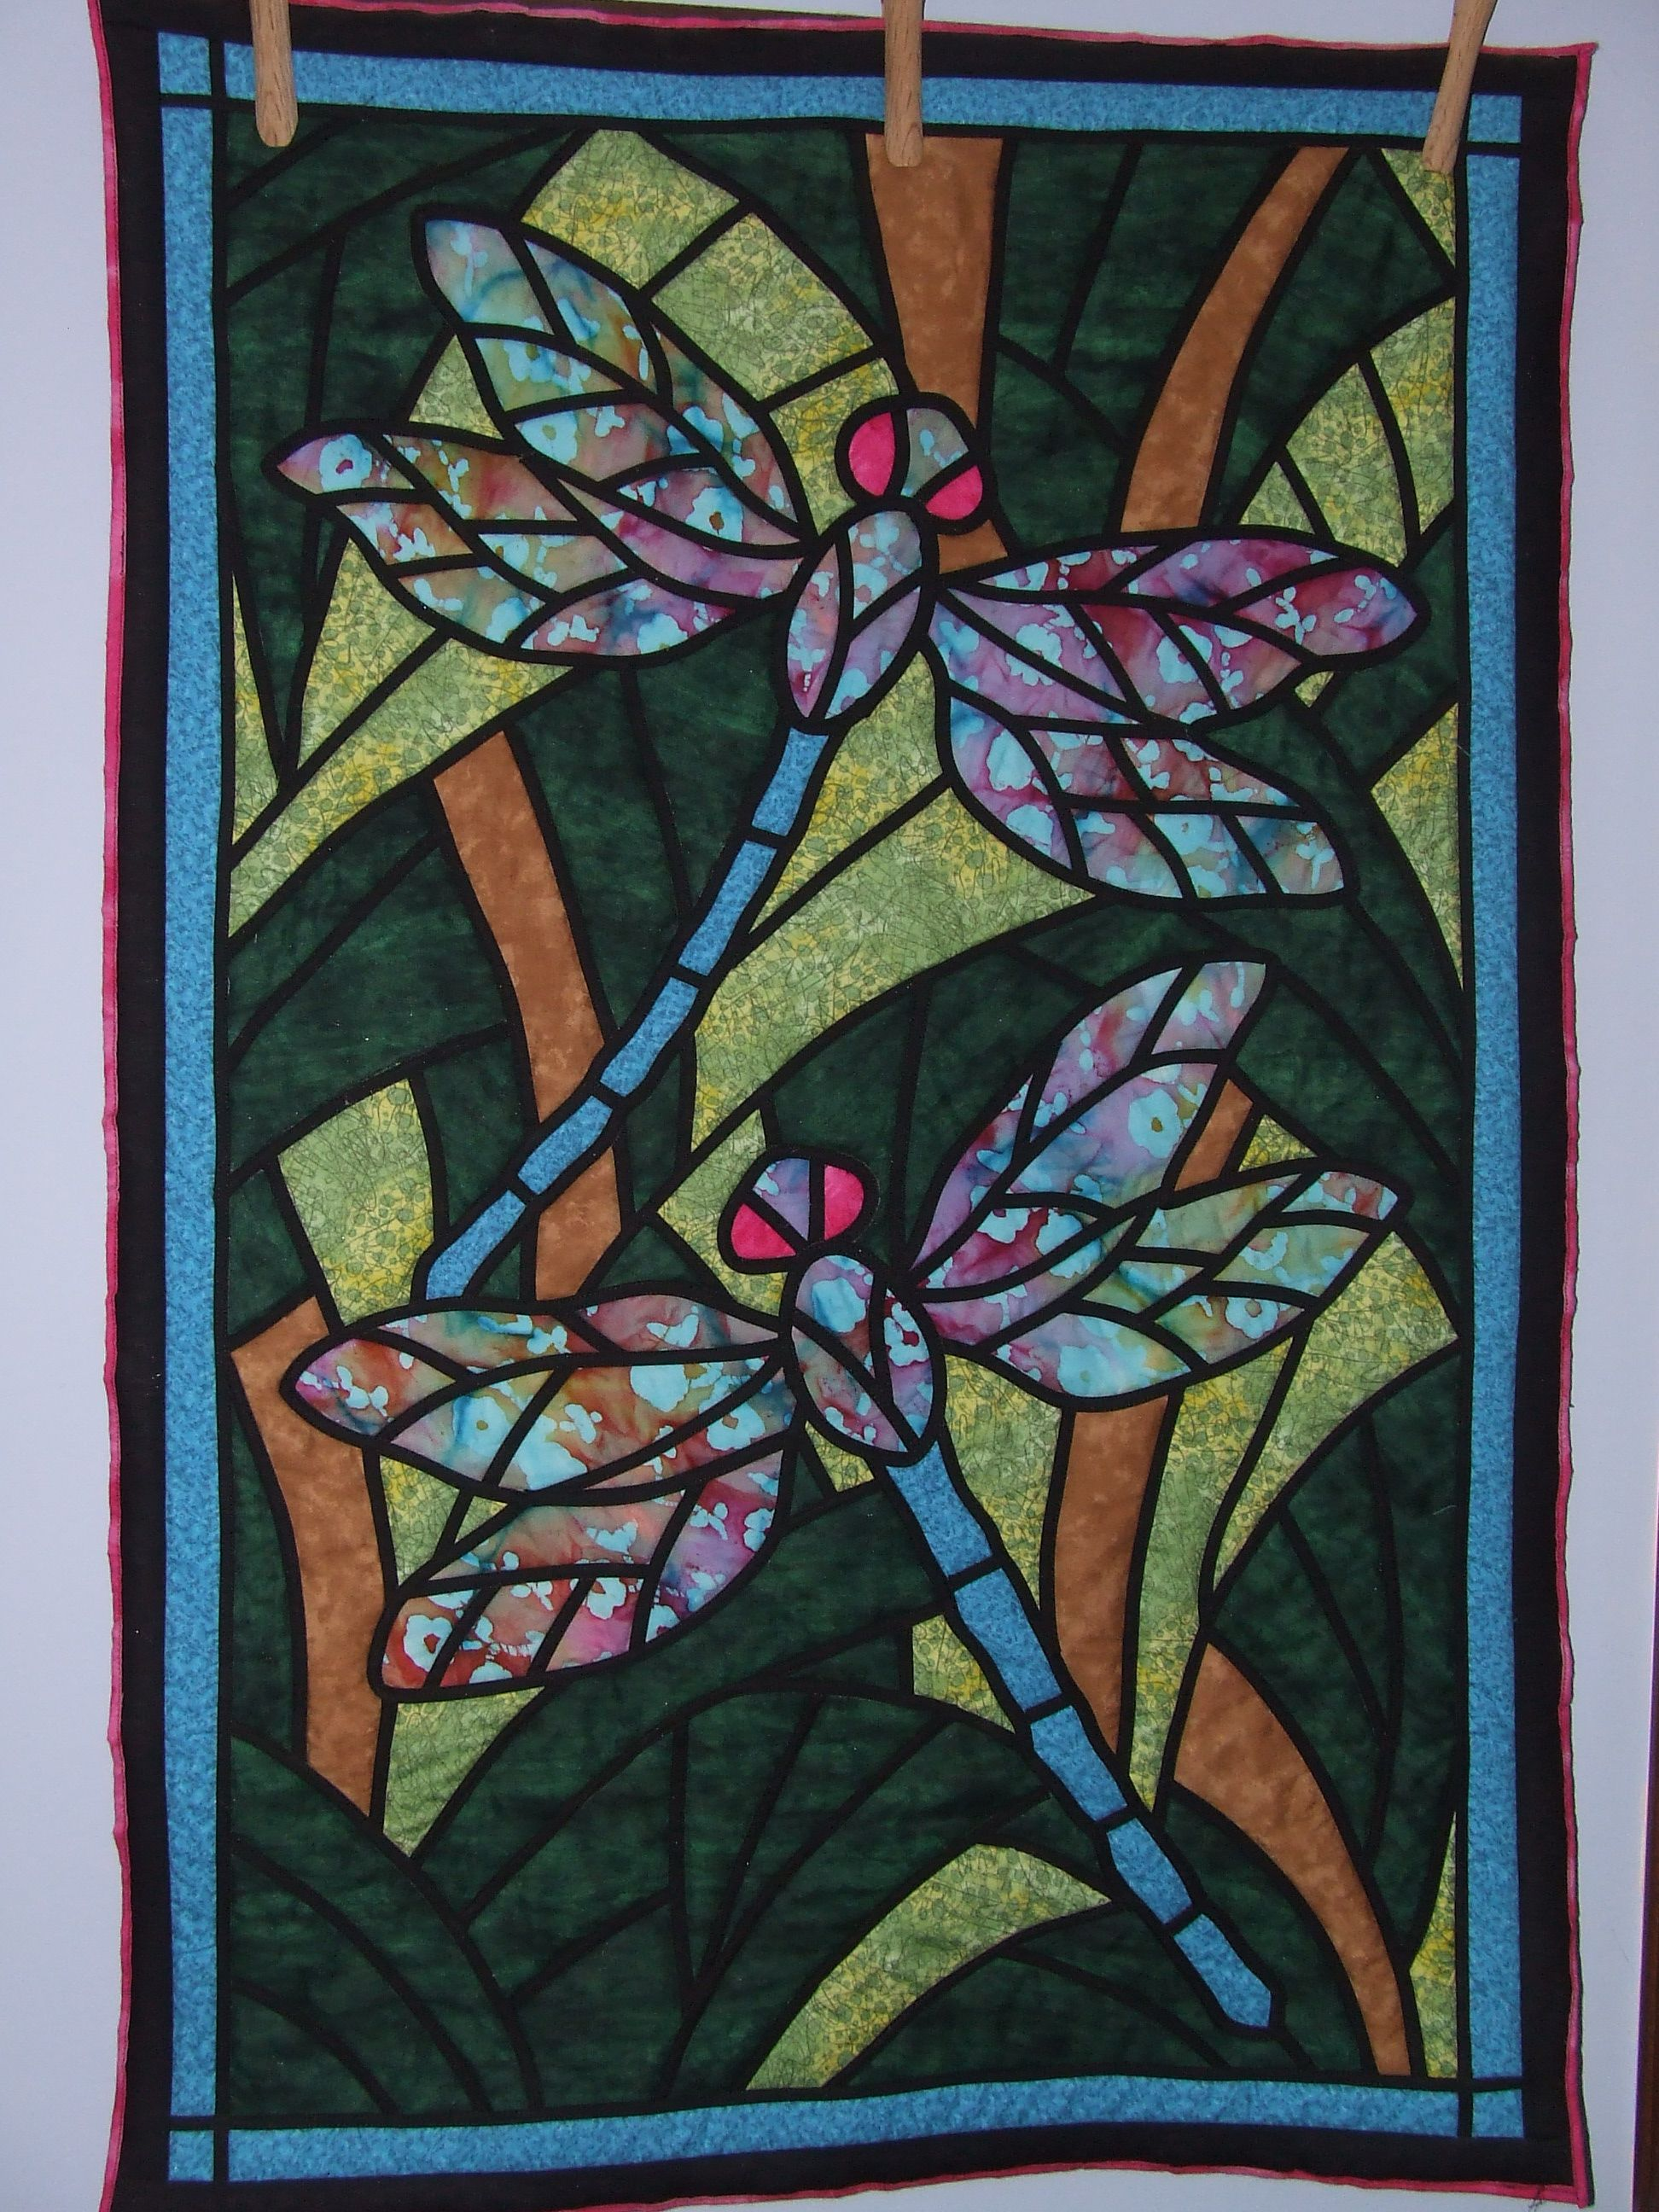 Dragonfly quilt | Quilts | Pinterest | Dragonflies, Patchwork and ... : dragonfly quilt - Adamdwight.com